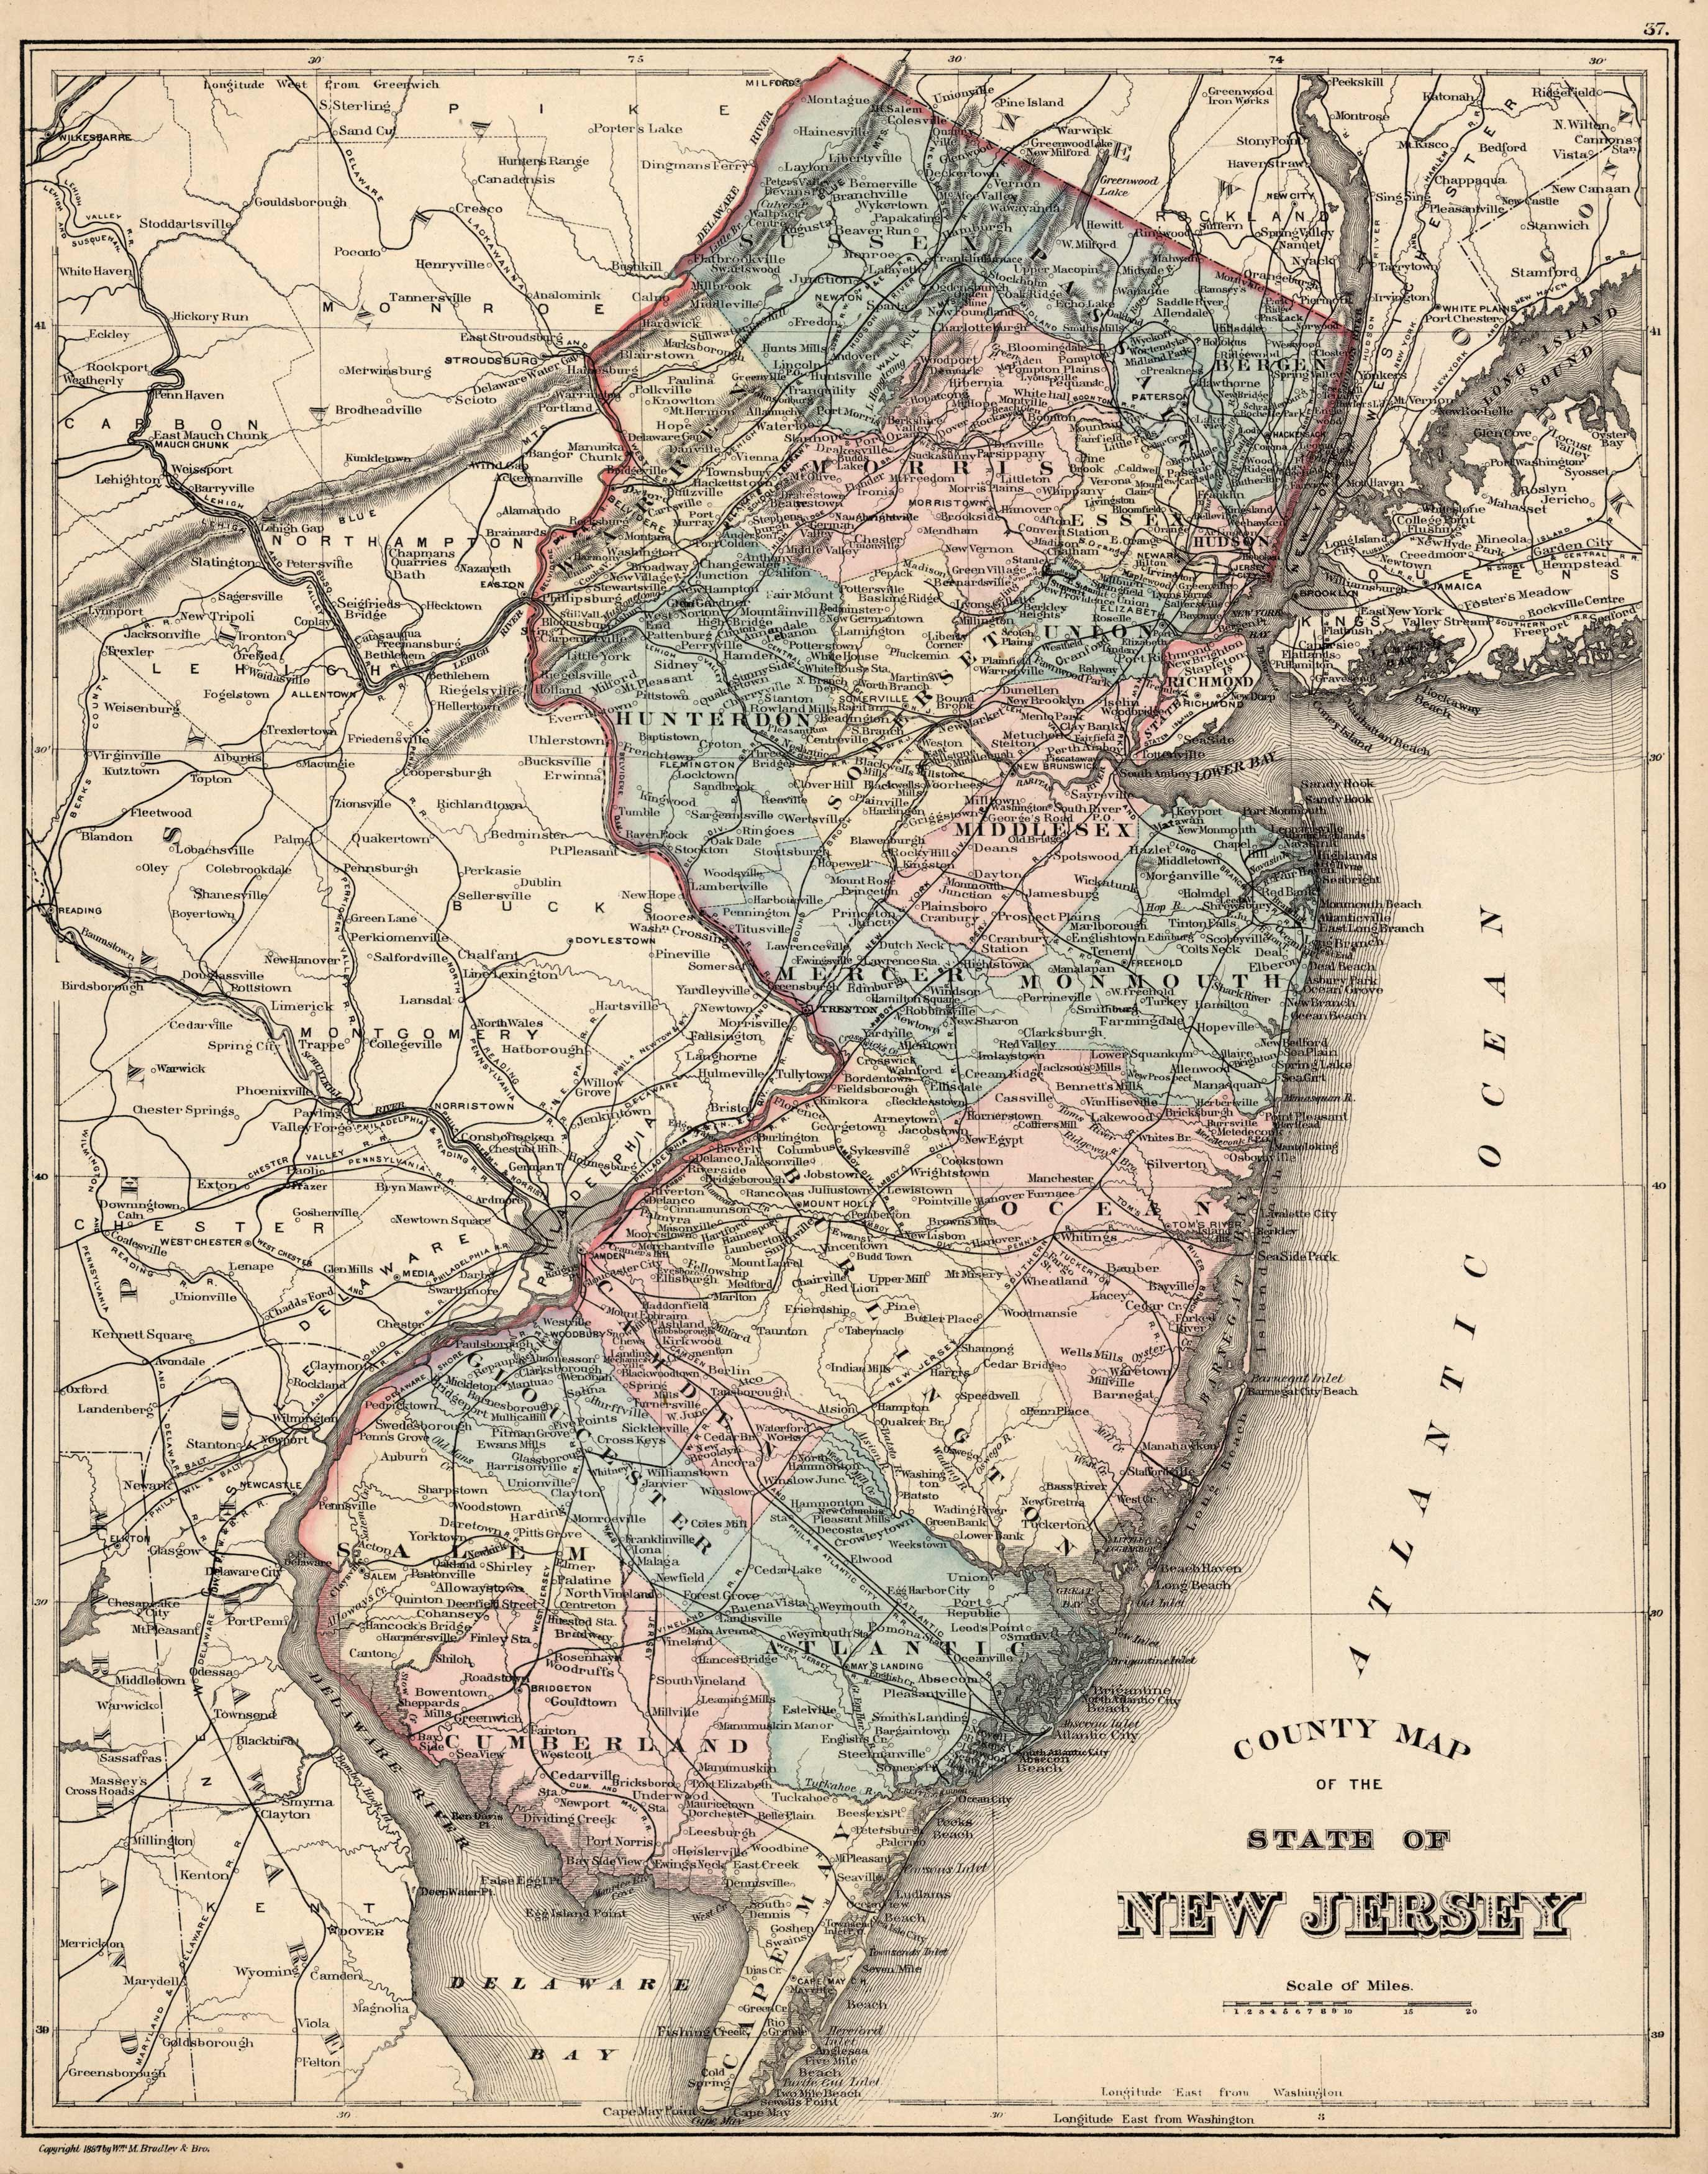 County Map of the State of New Jersey